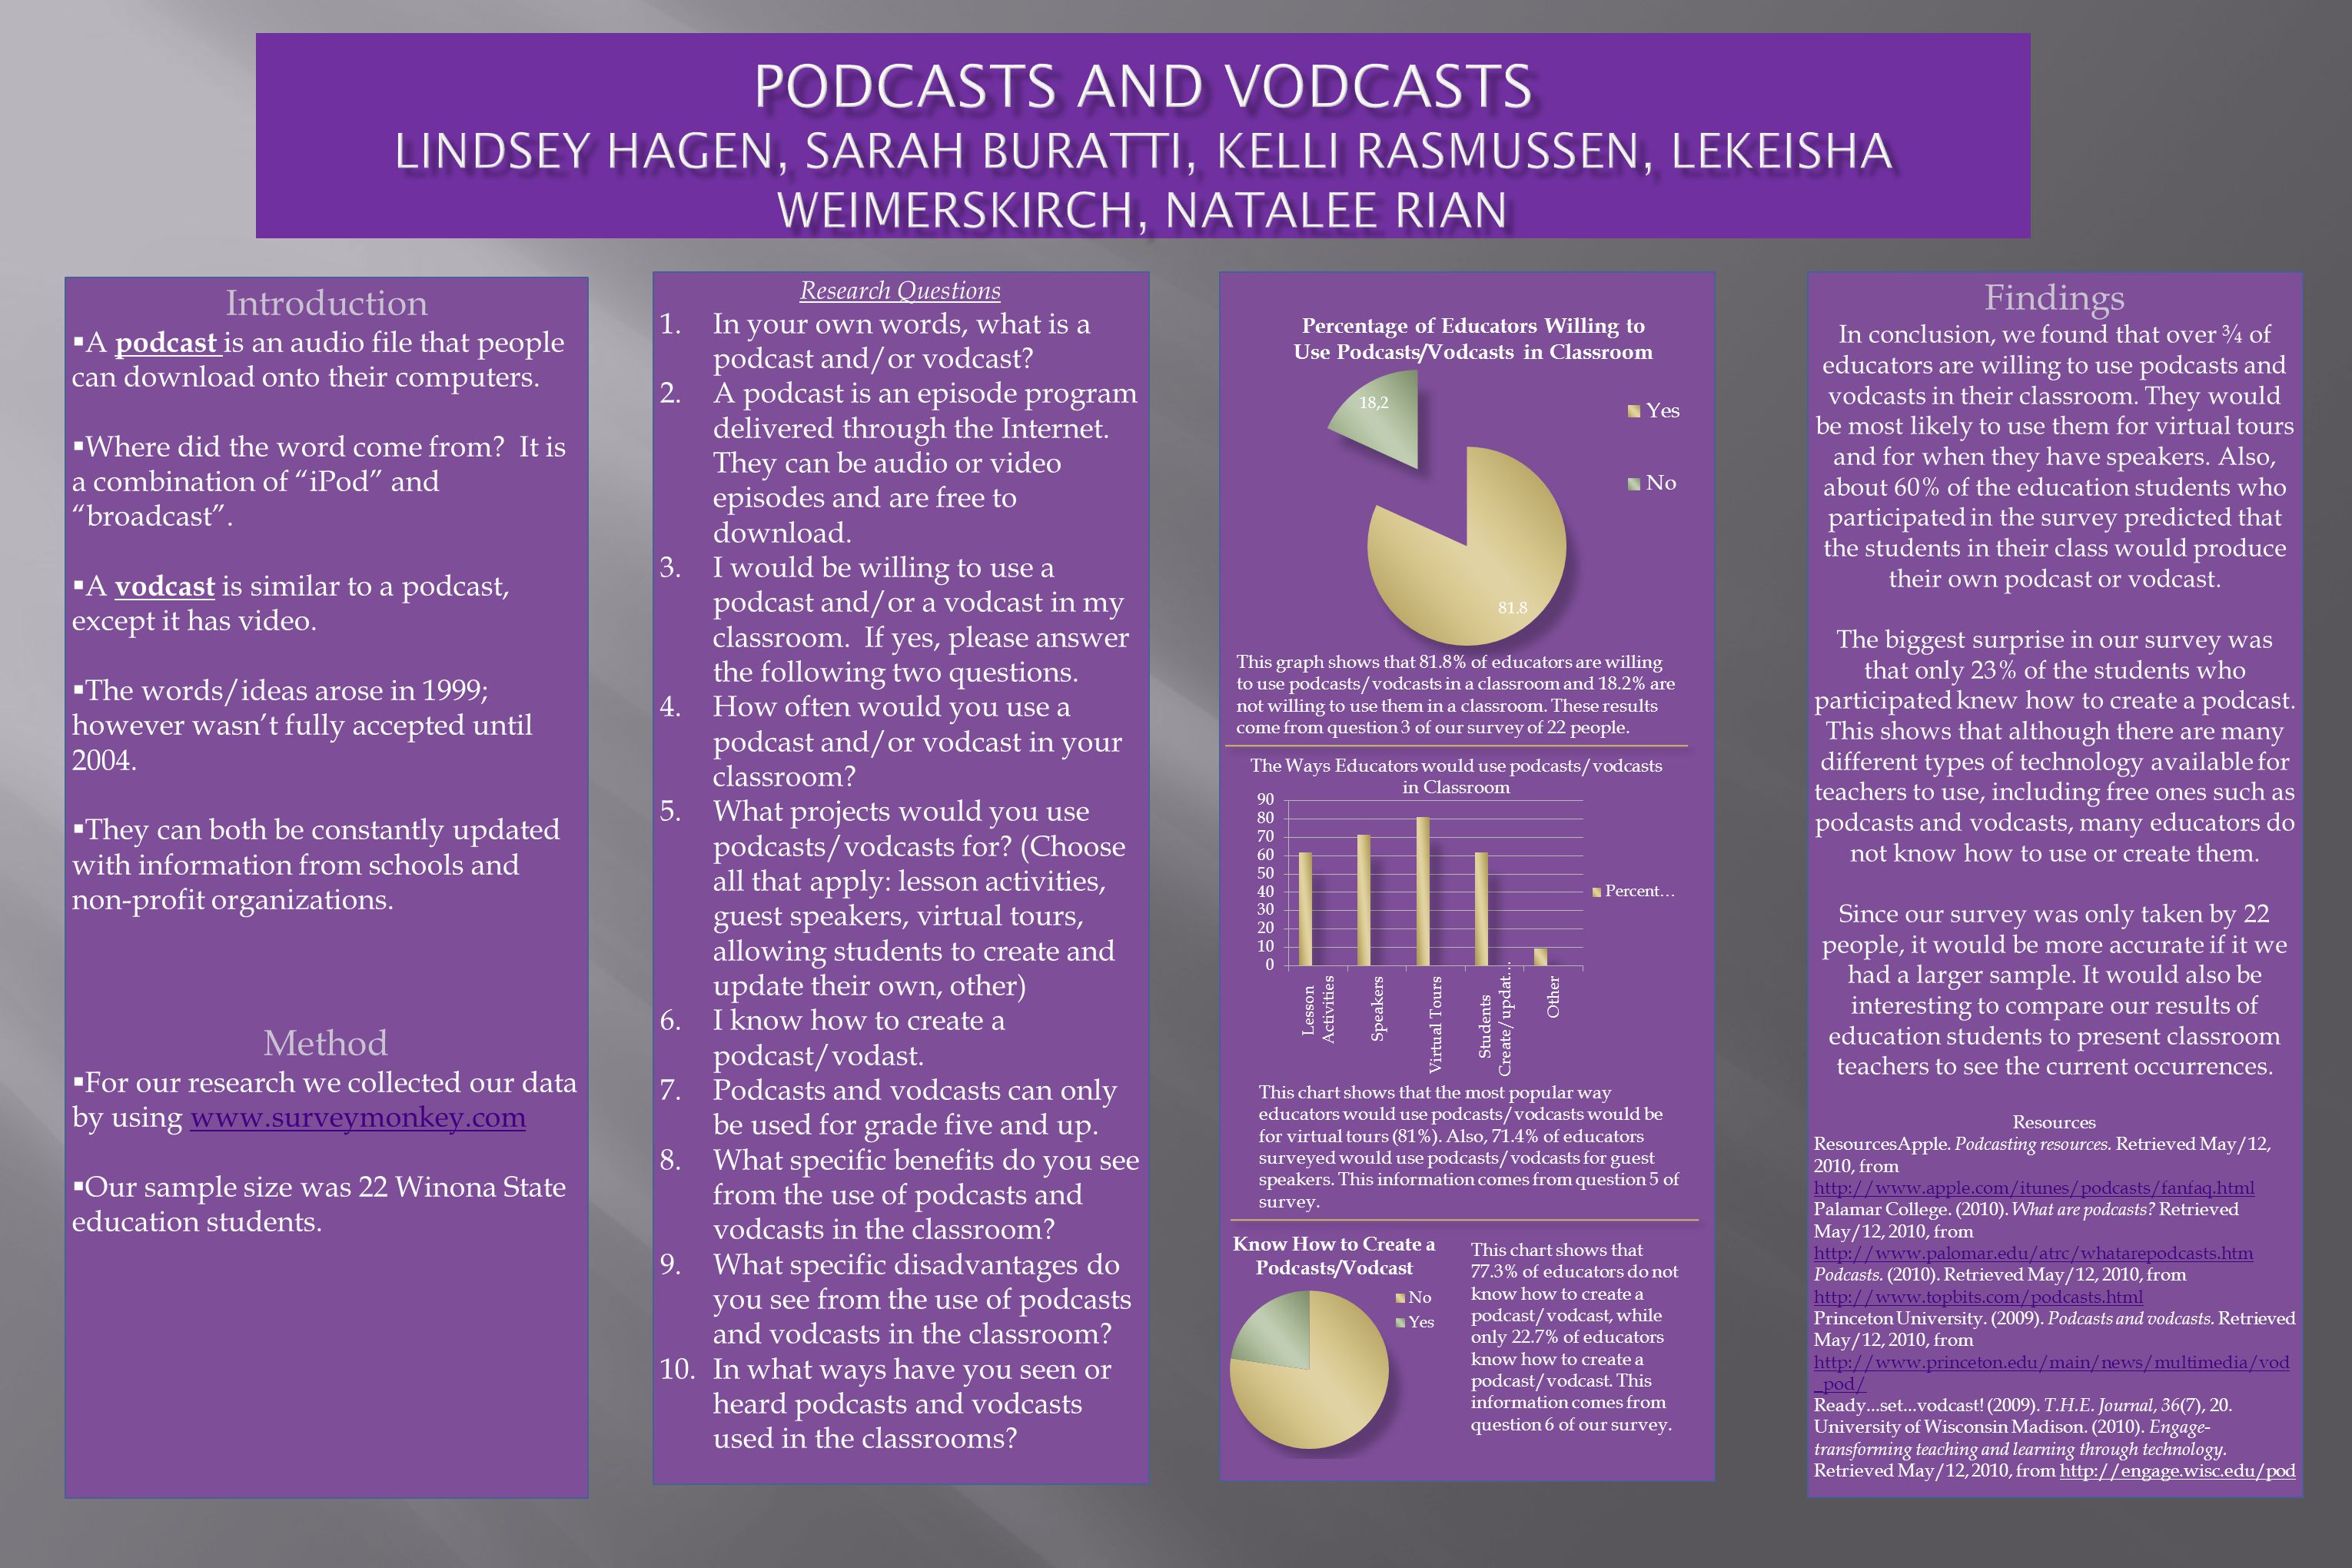 Findings In conclusion, we found that over ¾ of educators are willing to use podcasts and vodcasts in their classroom.